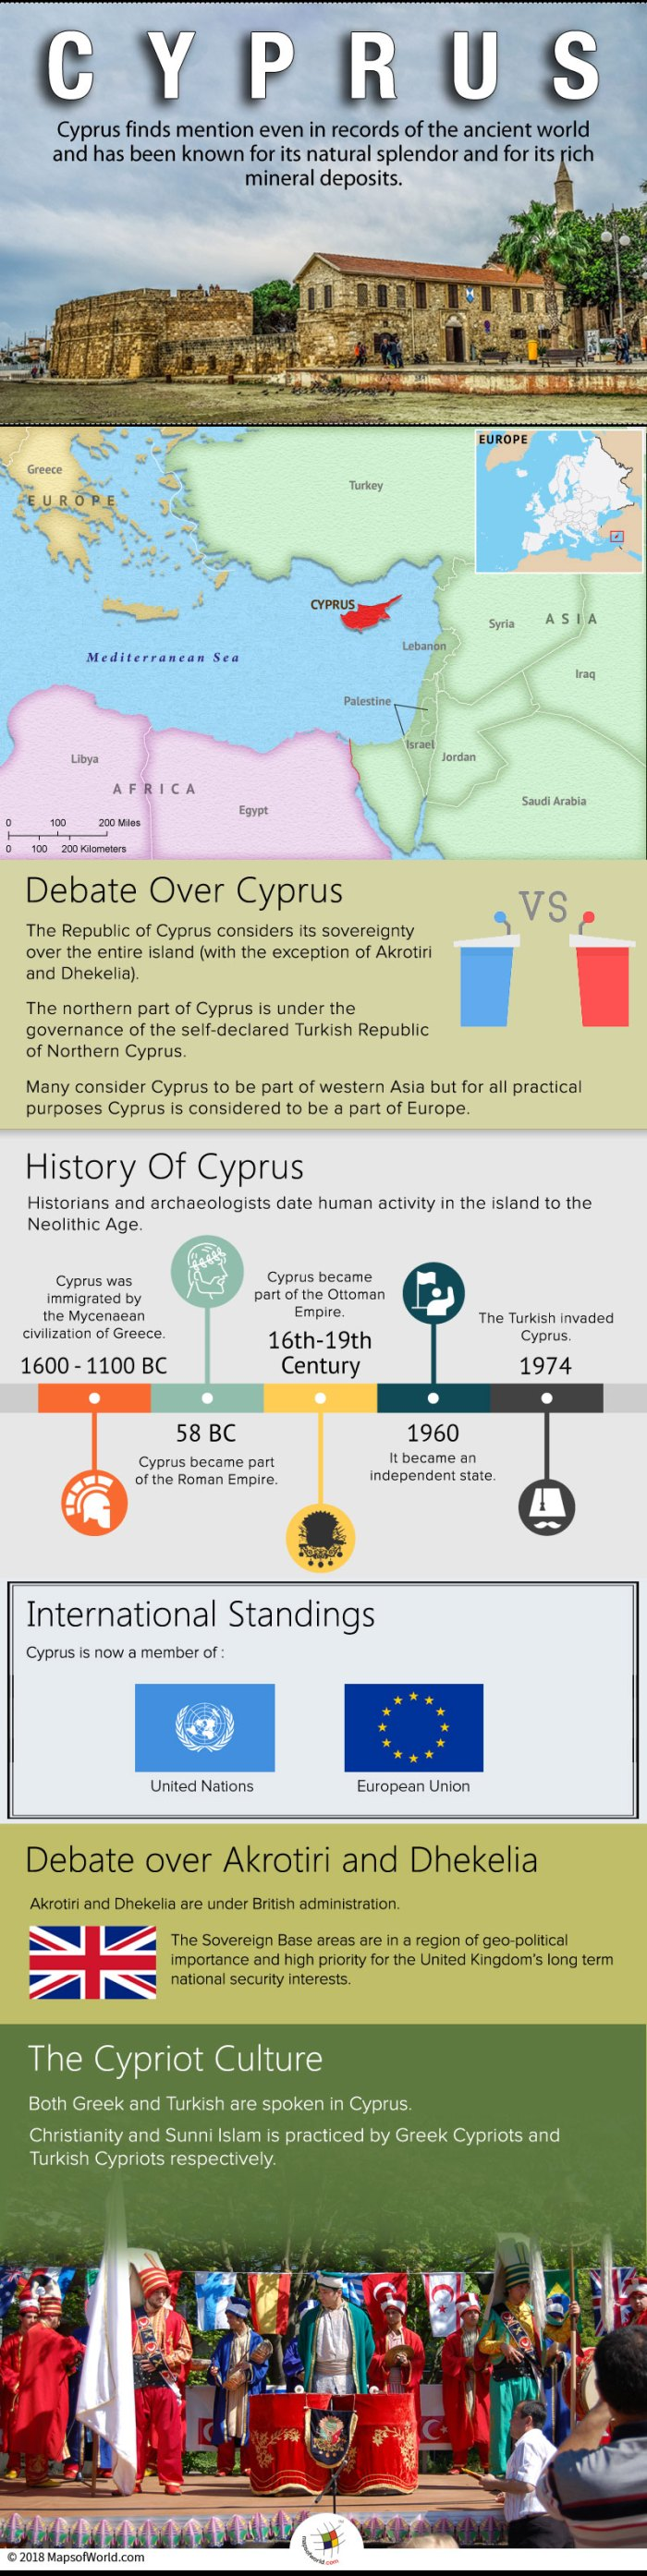 Infographic elaborating details about Cyprus